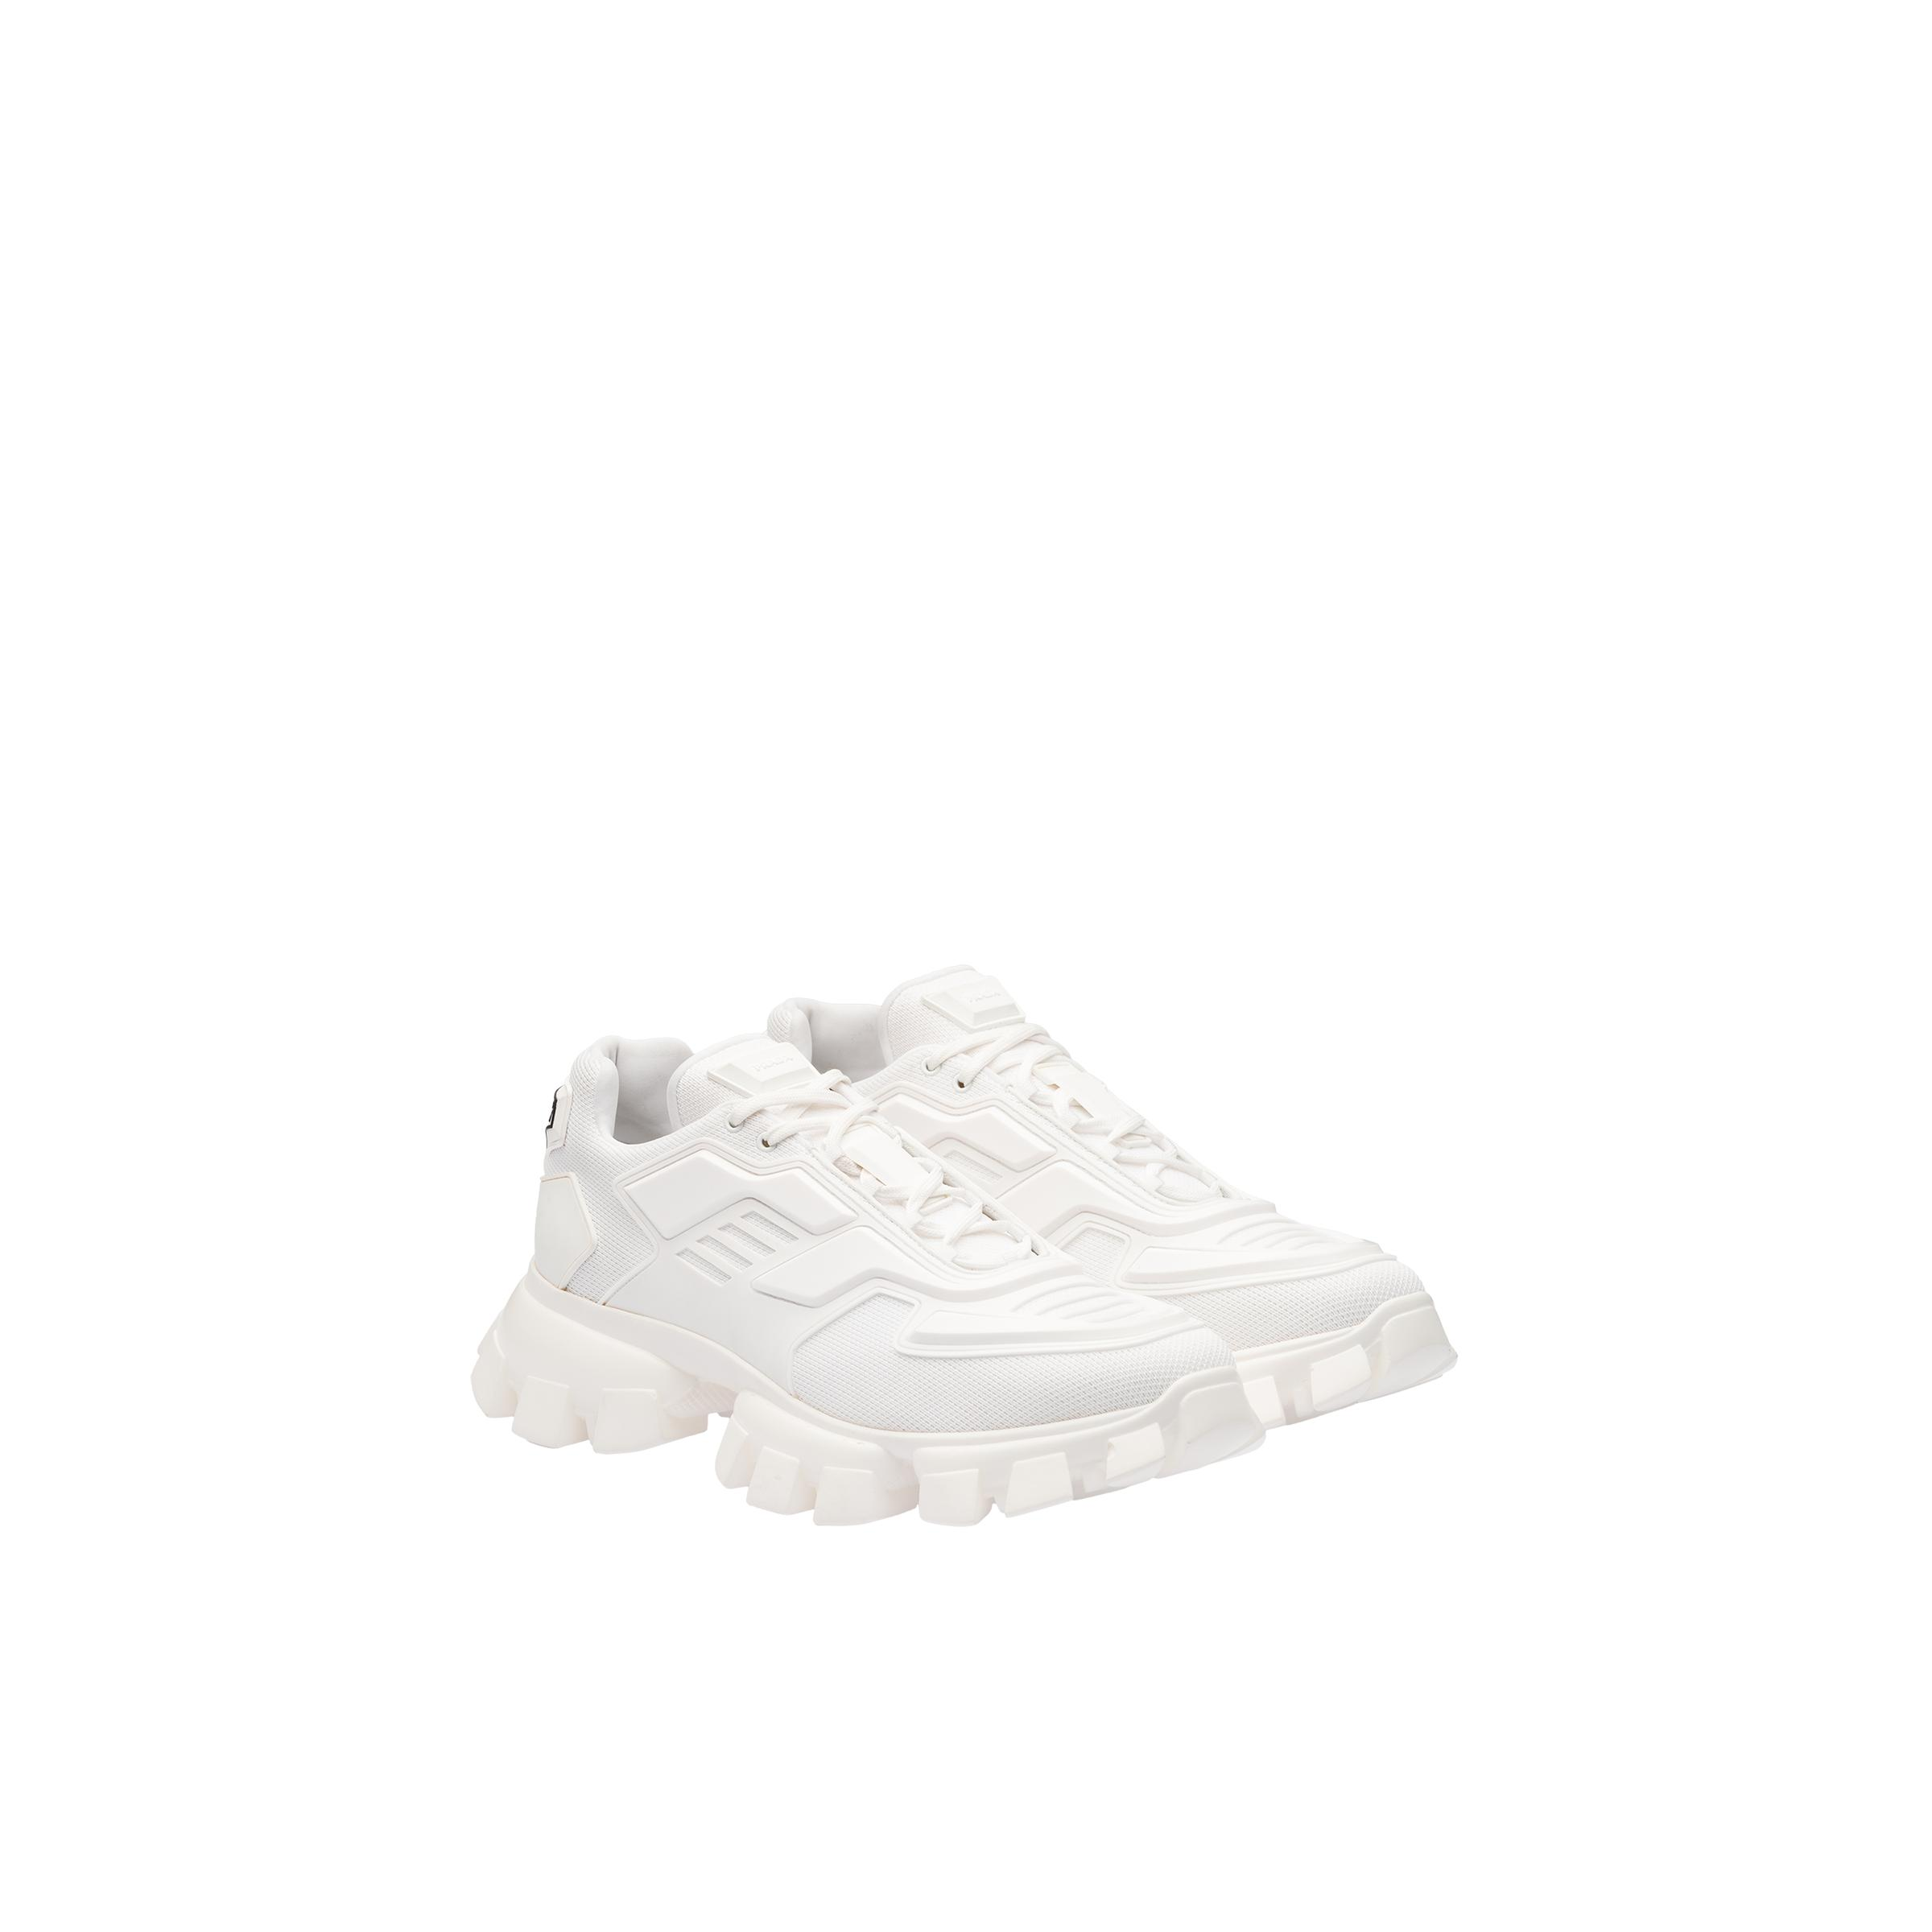 Cloudbust Thunder Technical Fabric Sneakers Men White